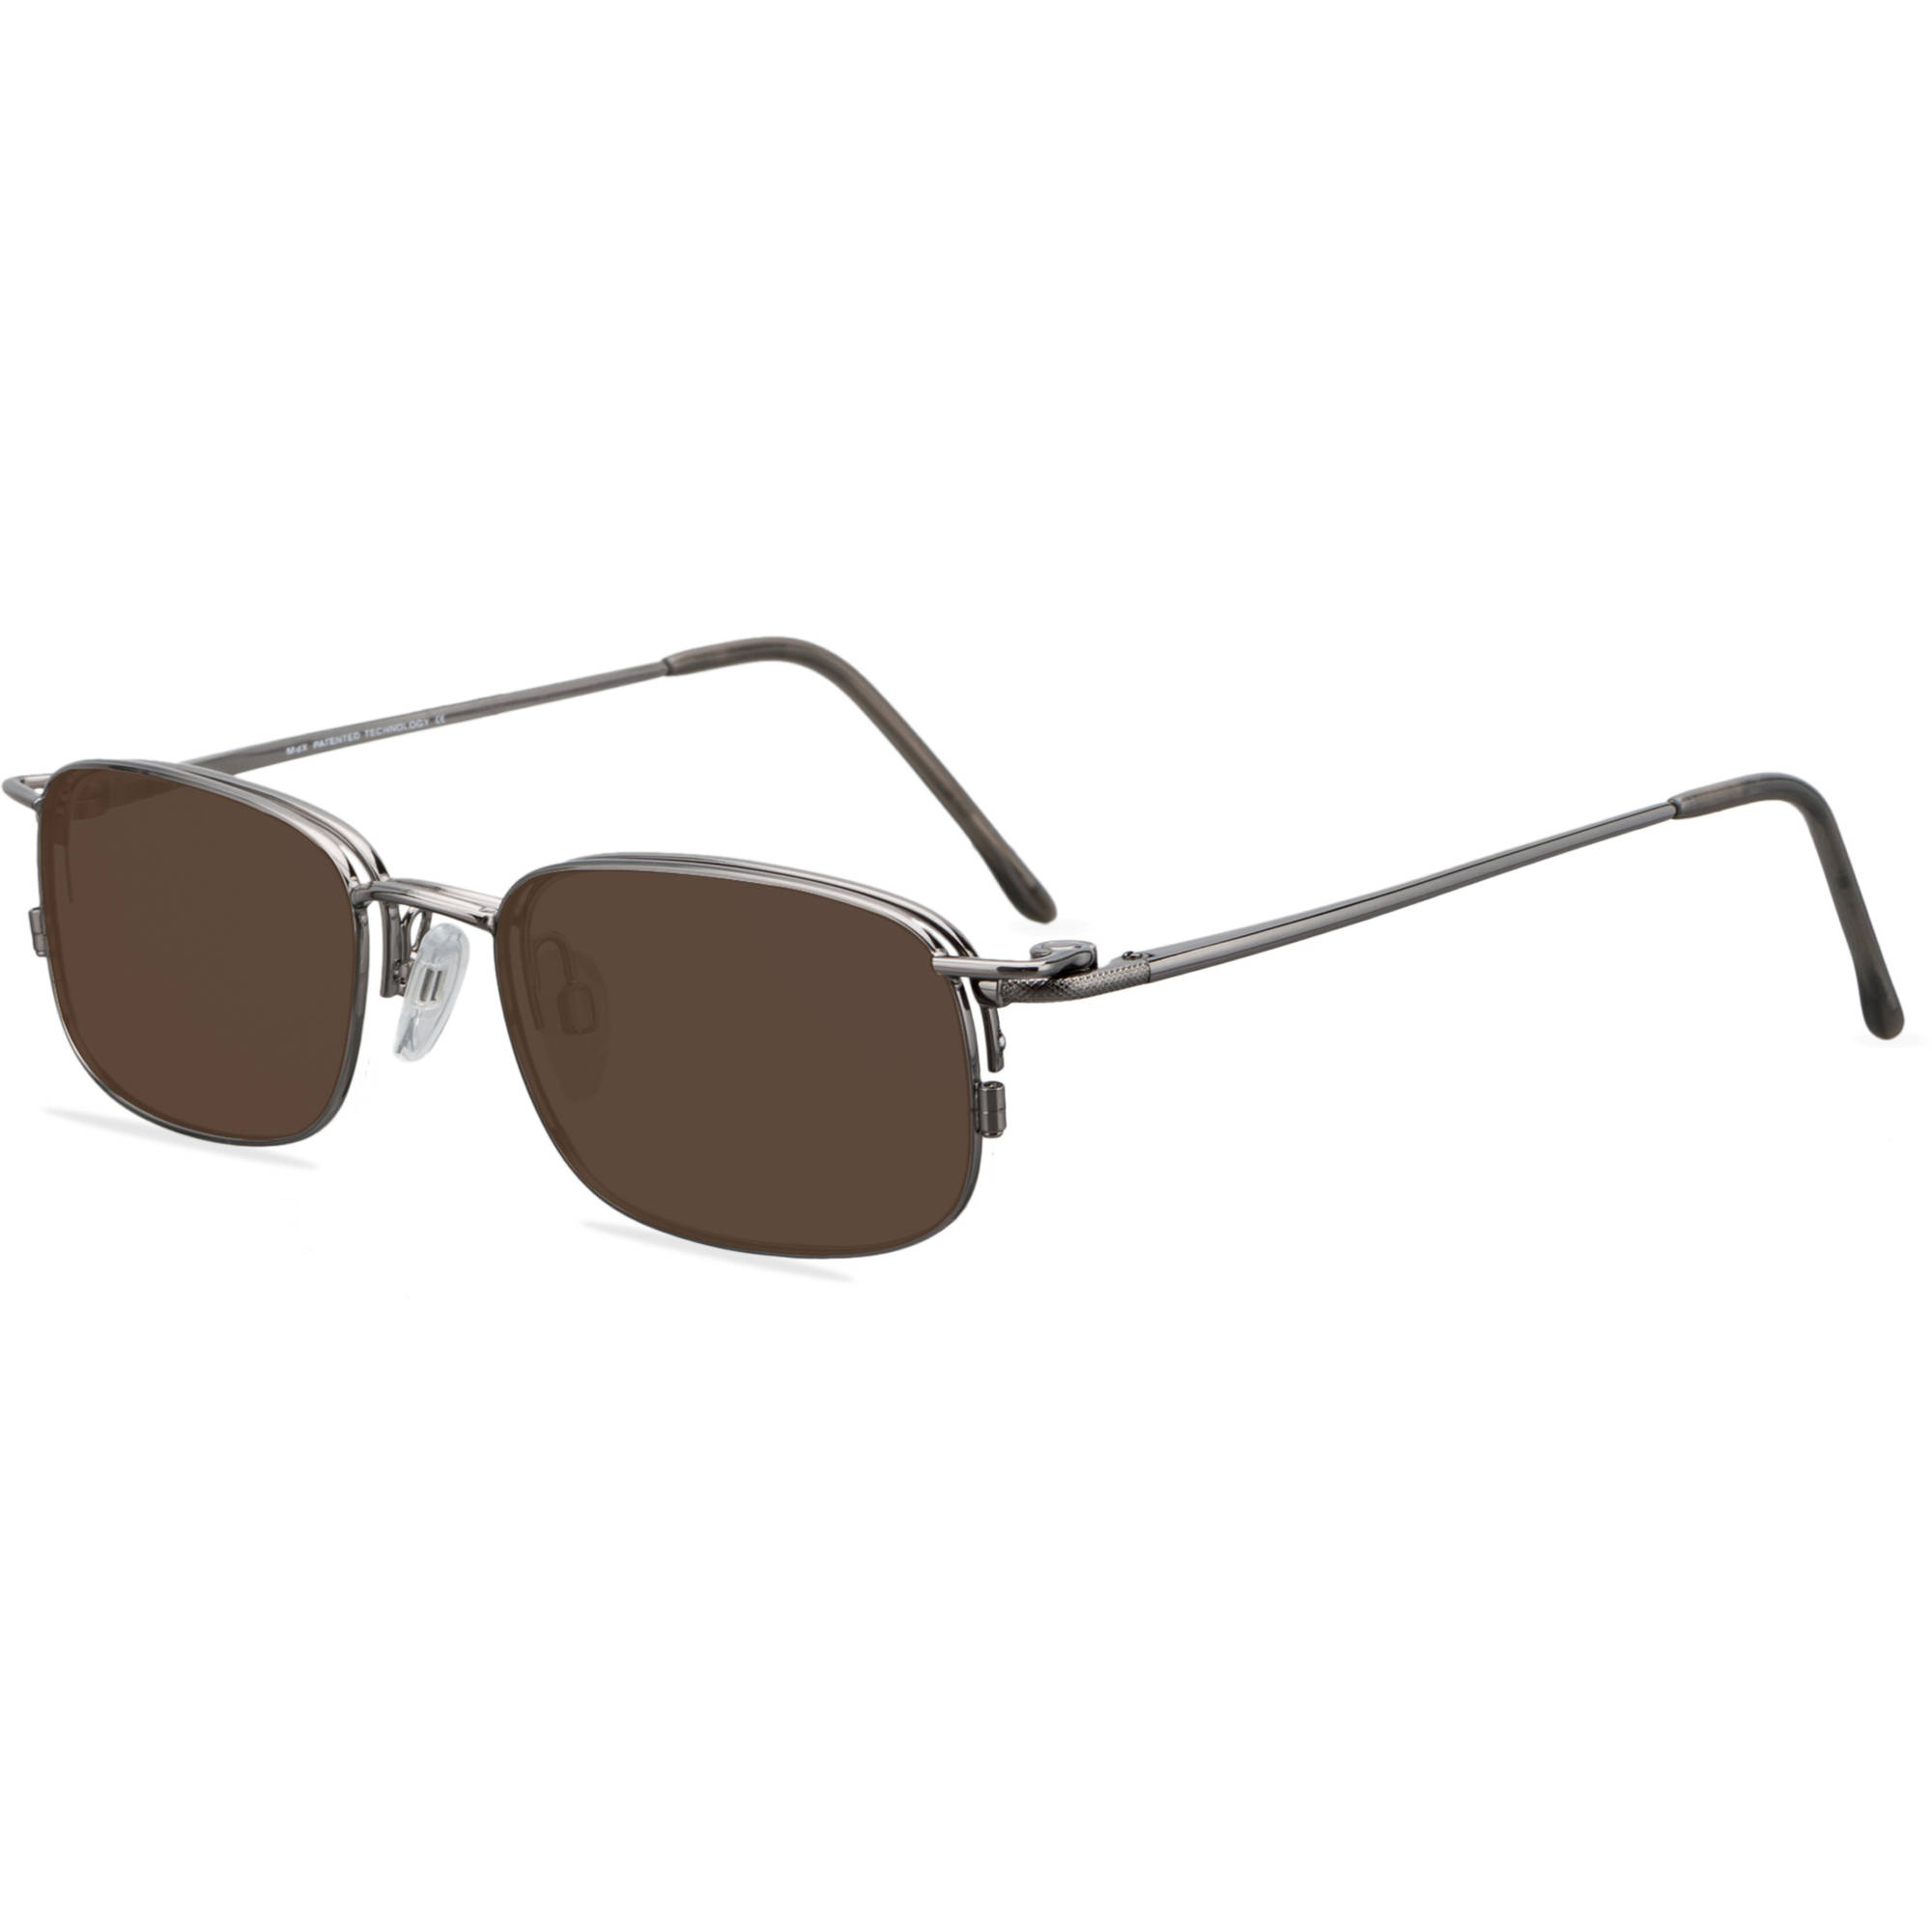 EasyClip Mens Prescription Glasses, S2435 Grey - Walmart.com at Walmart - Vision Center in Lewisburg, TN | Tuggl